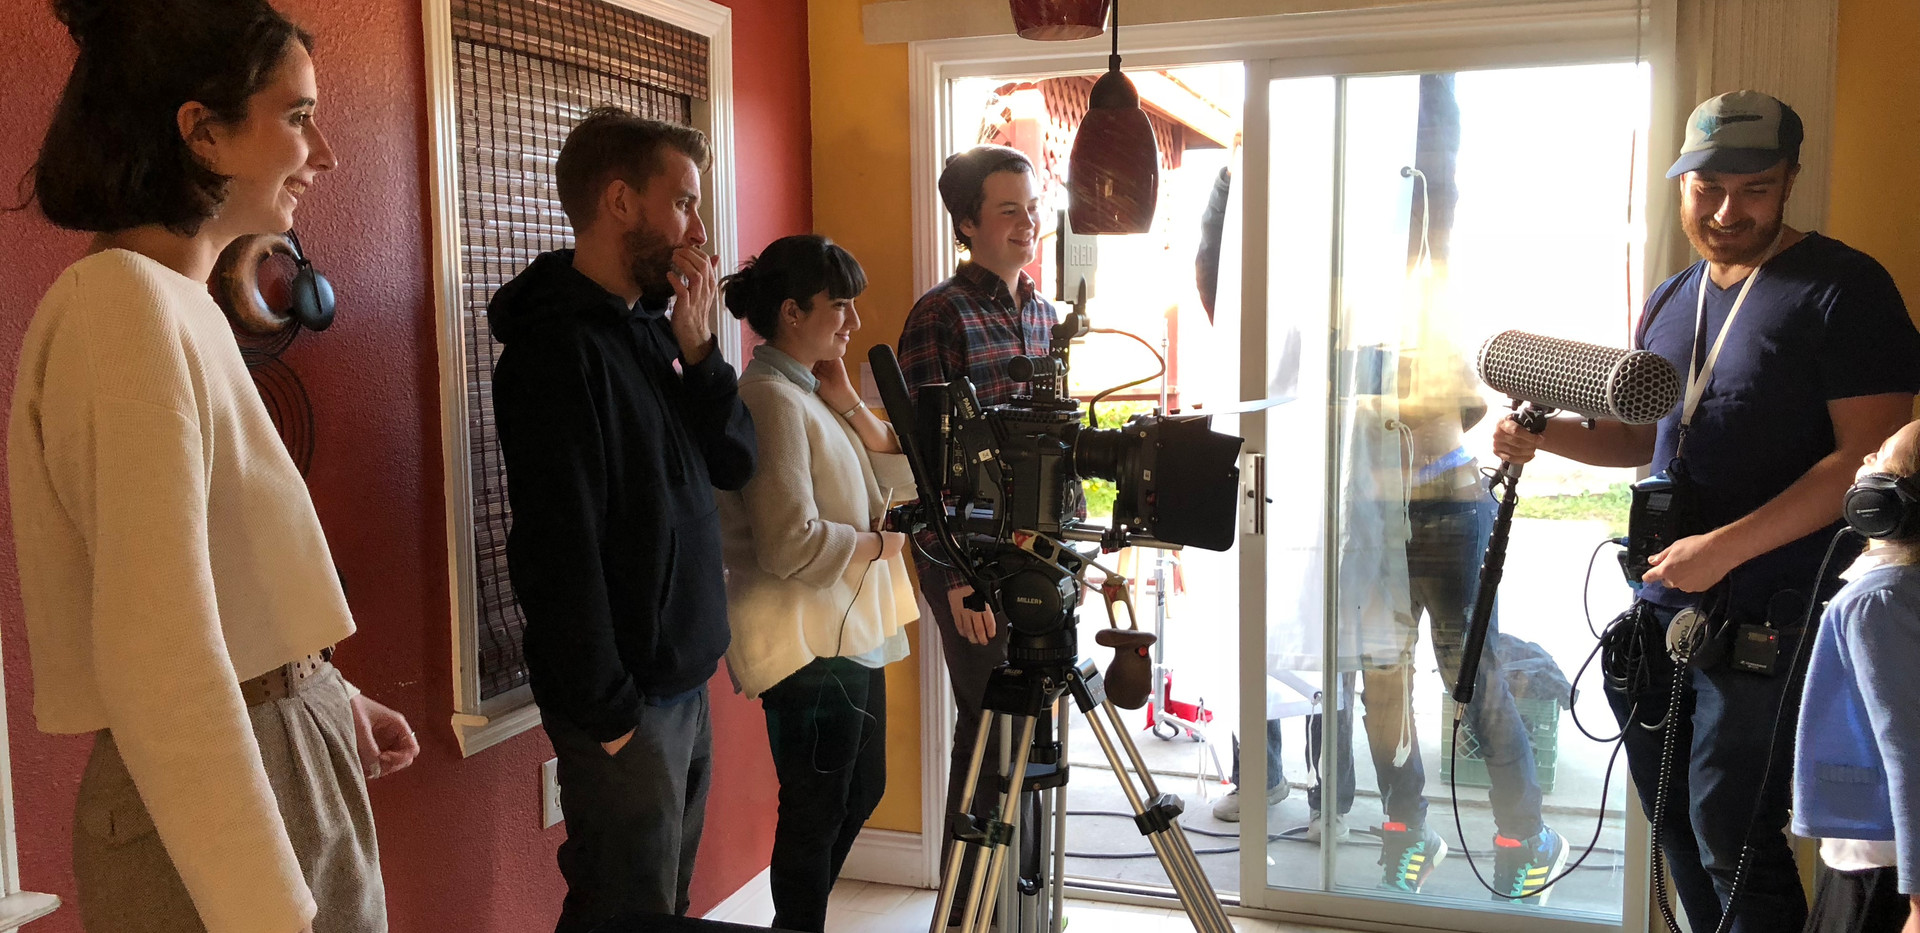 Clare directing on set